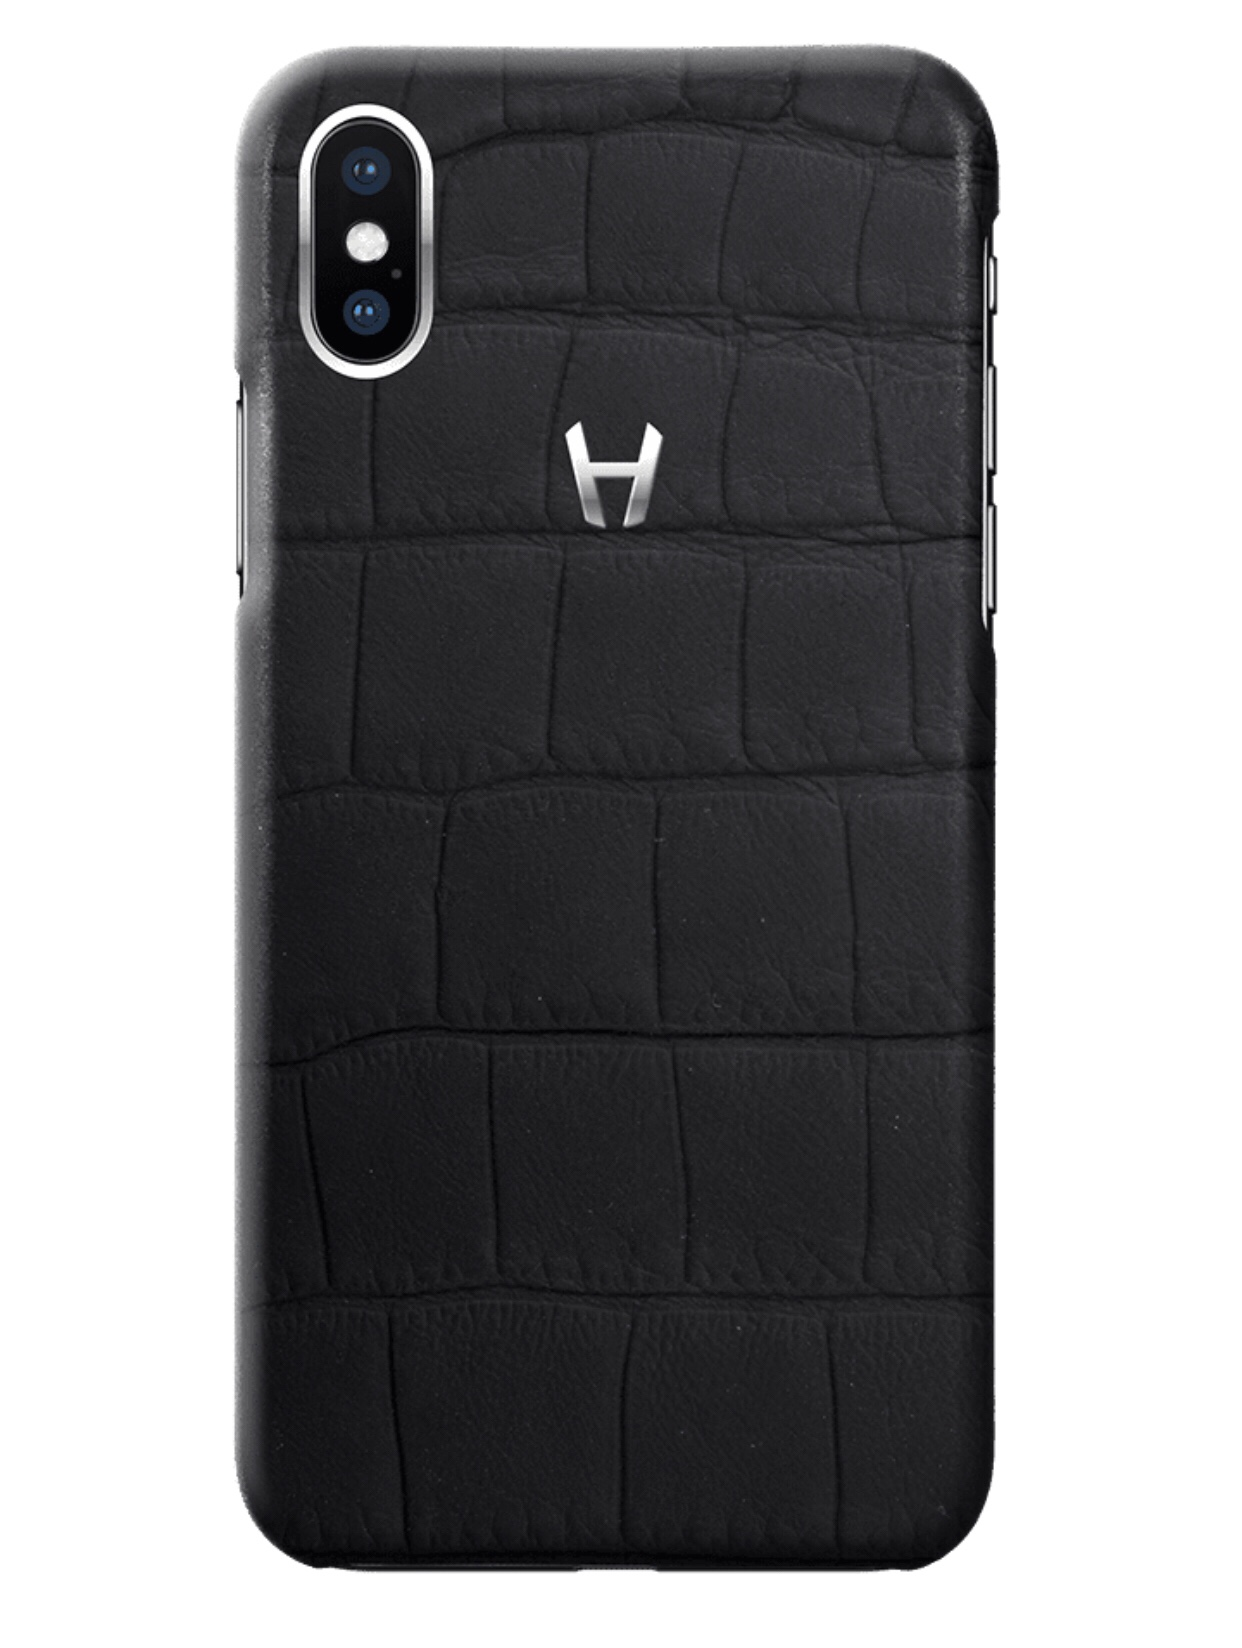 Hadoro Black carbon Alligator Case for iPhone X Stainless Steel